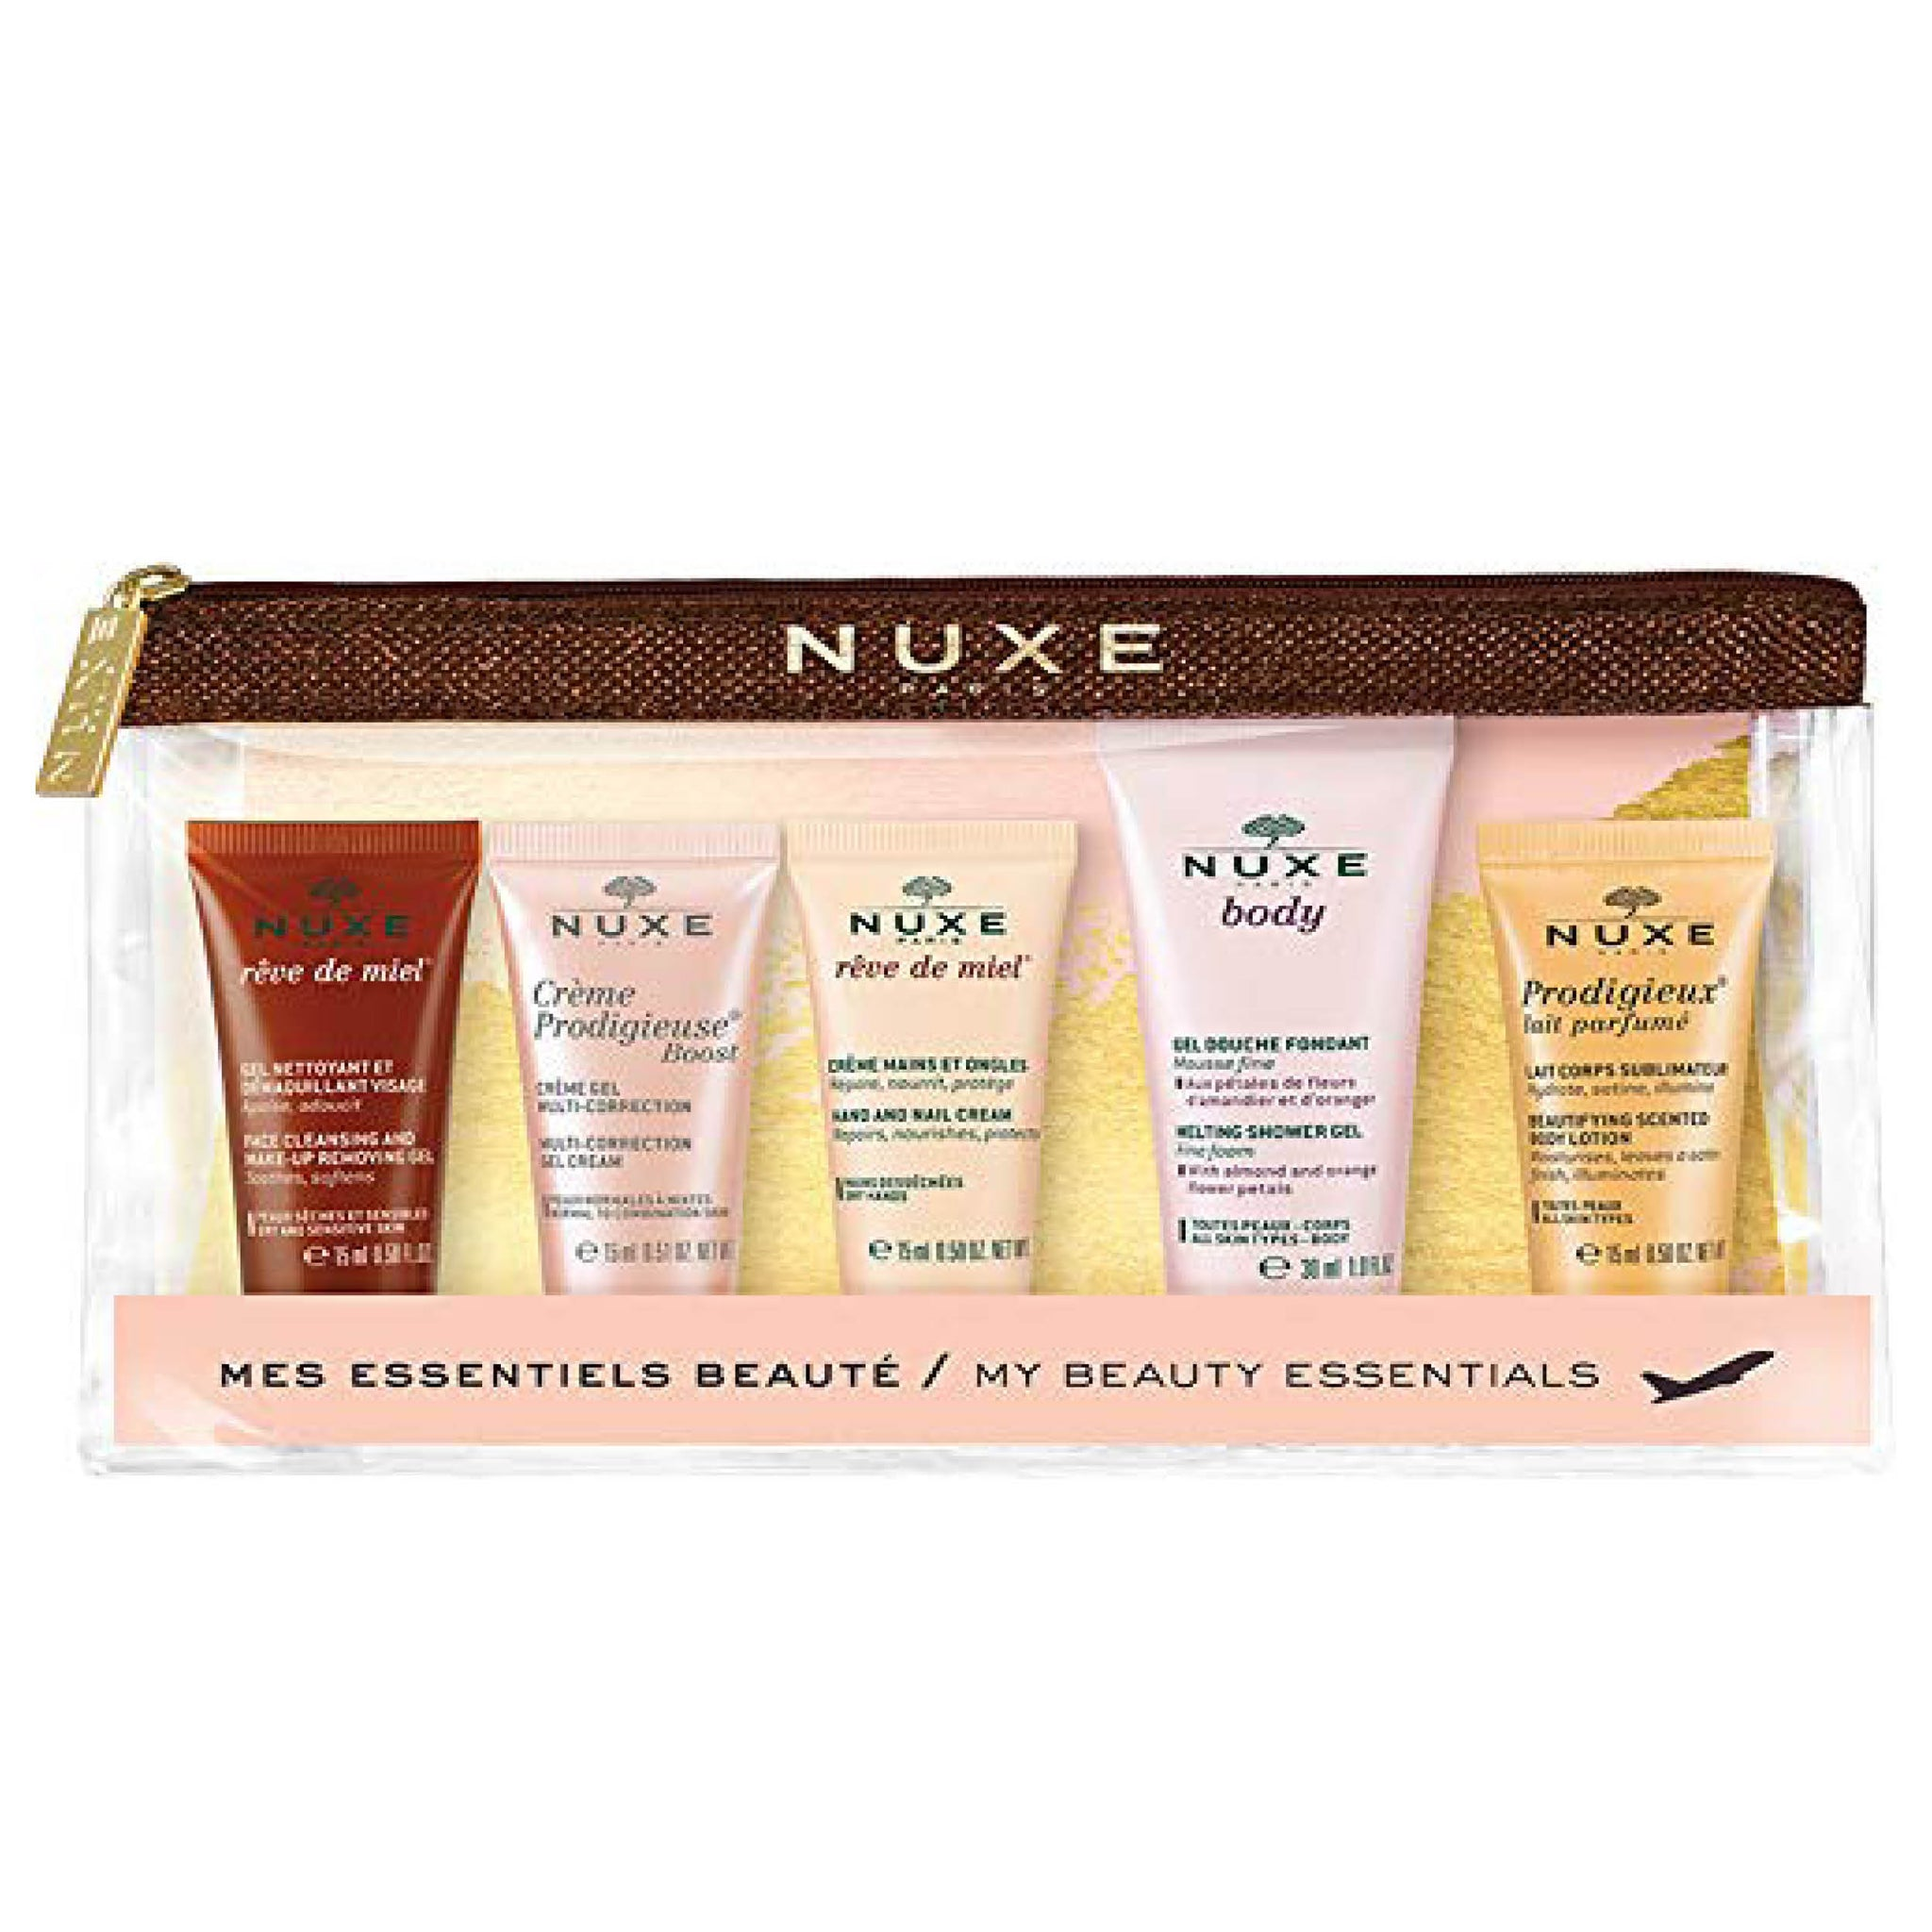 NUXE Travel Essentials Kit